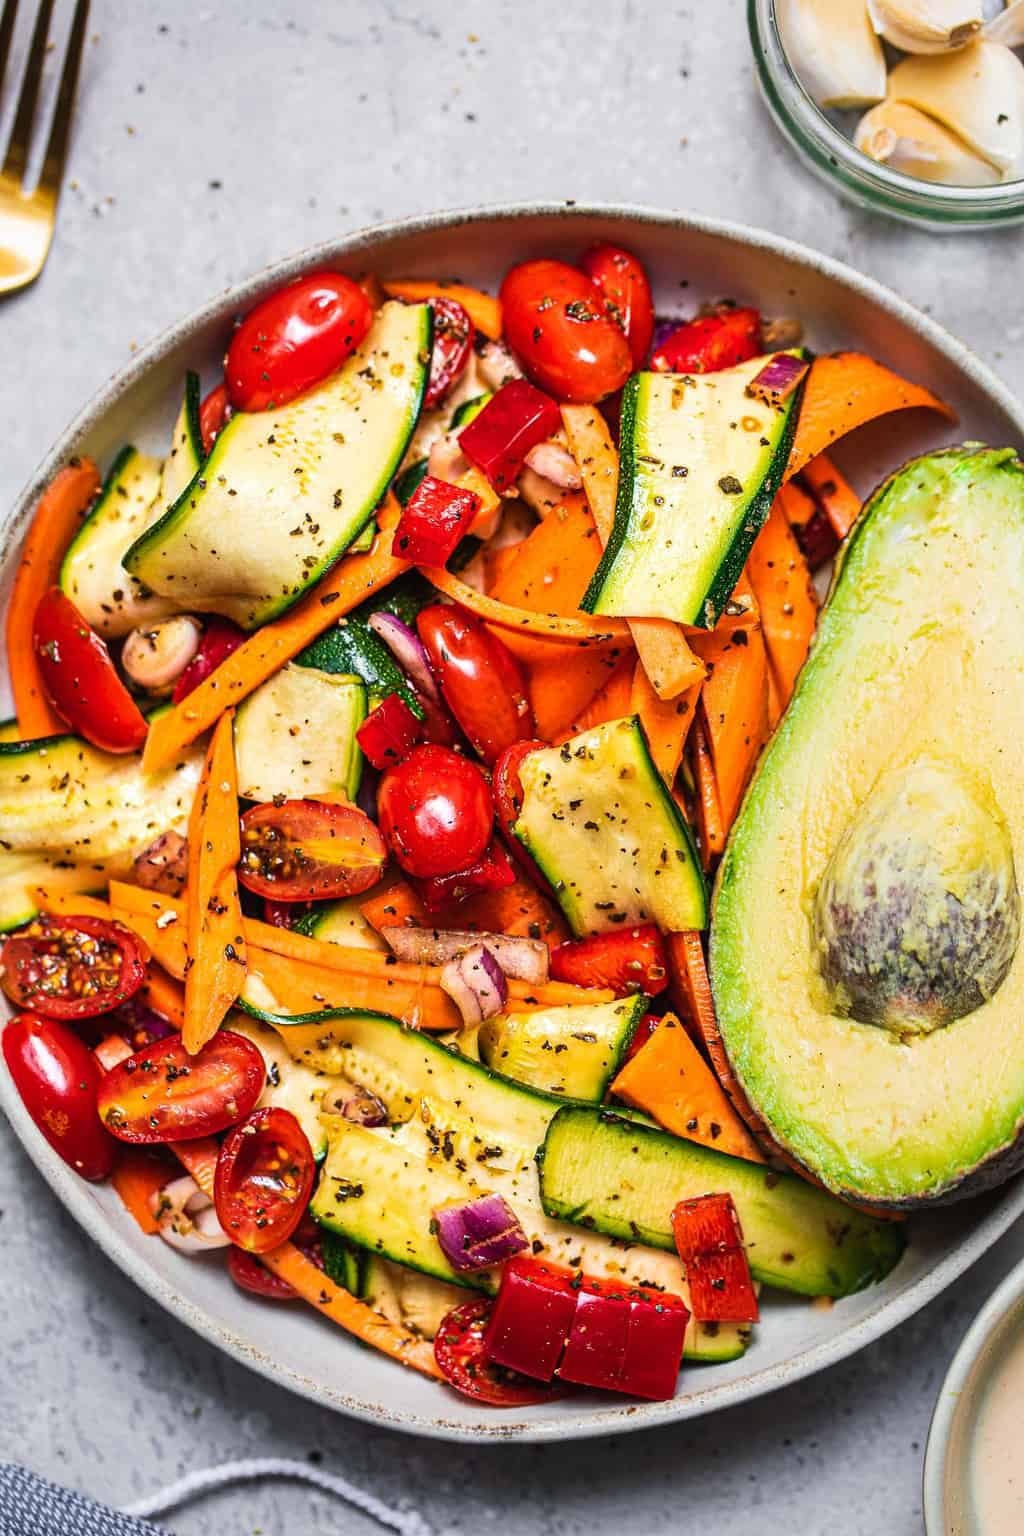 Zucchini sweet potato salad vegan gluten-free oil-free